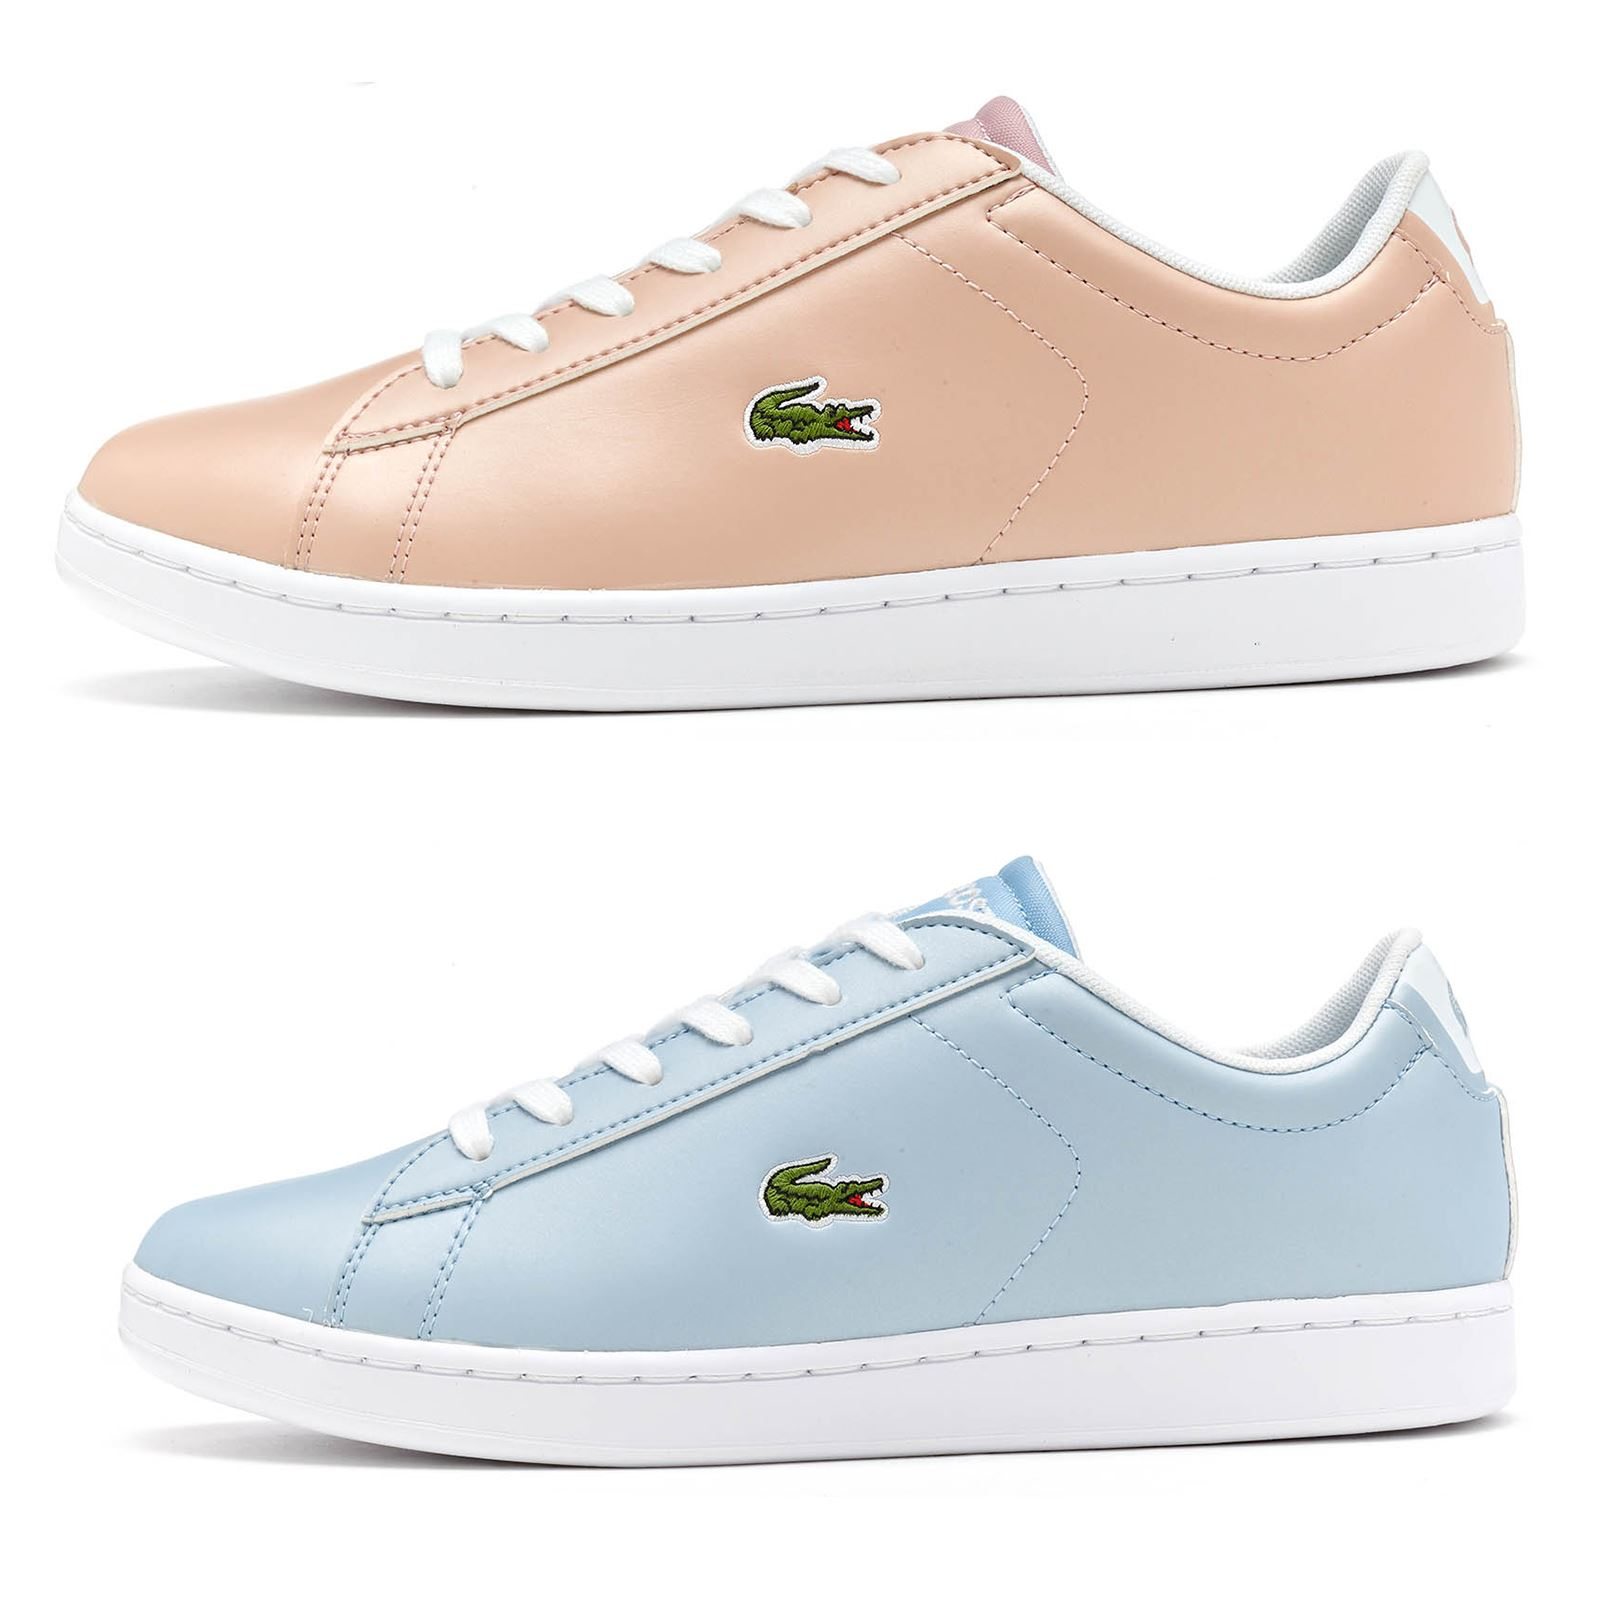 a37262ac676c24 Lacoste Carnaby Evo 317 6 SPJ GS Trainers in Pink   Blue 734SPJ0006 ...